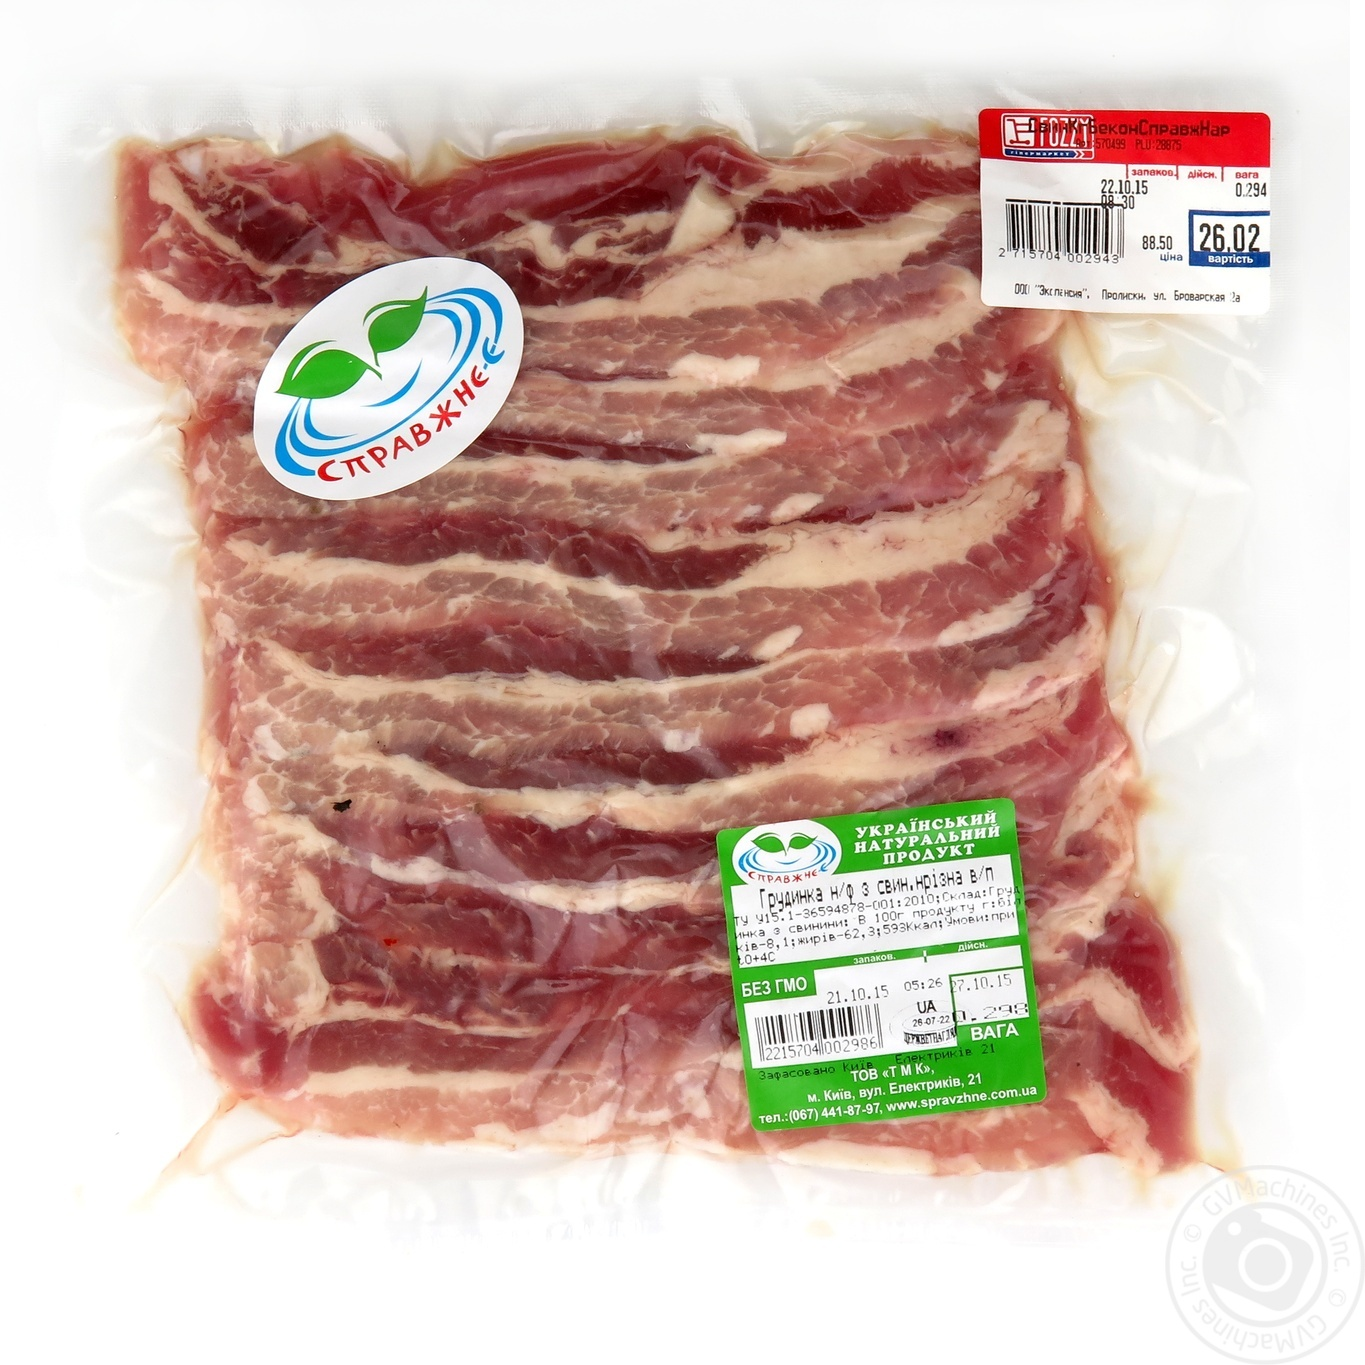 pics Up to 50 of Supermarket Meat Poultry Is Tainted, But Dont Panic